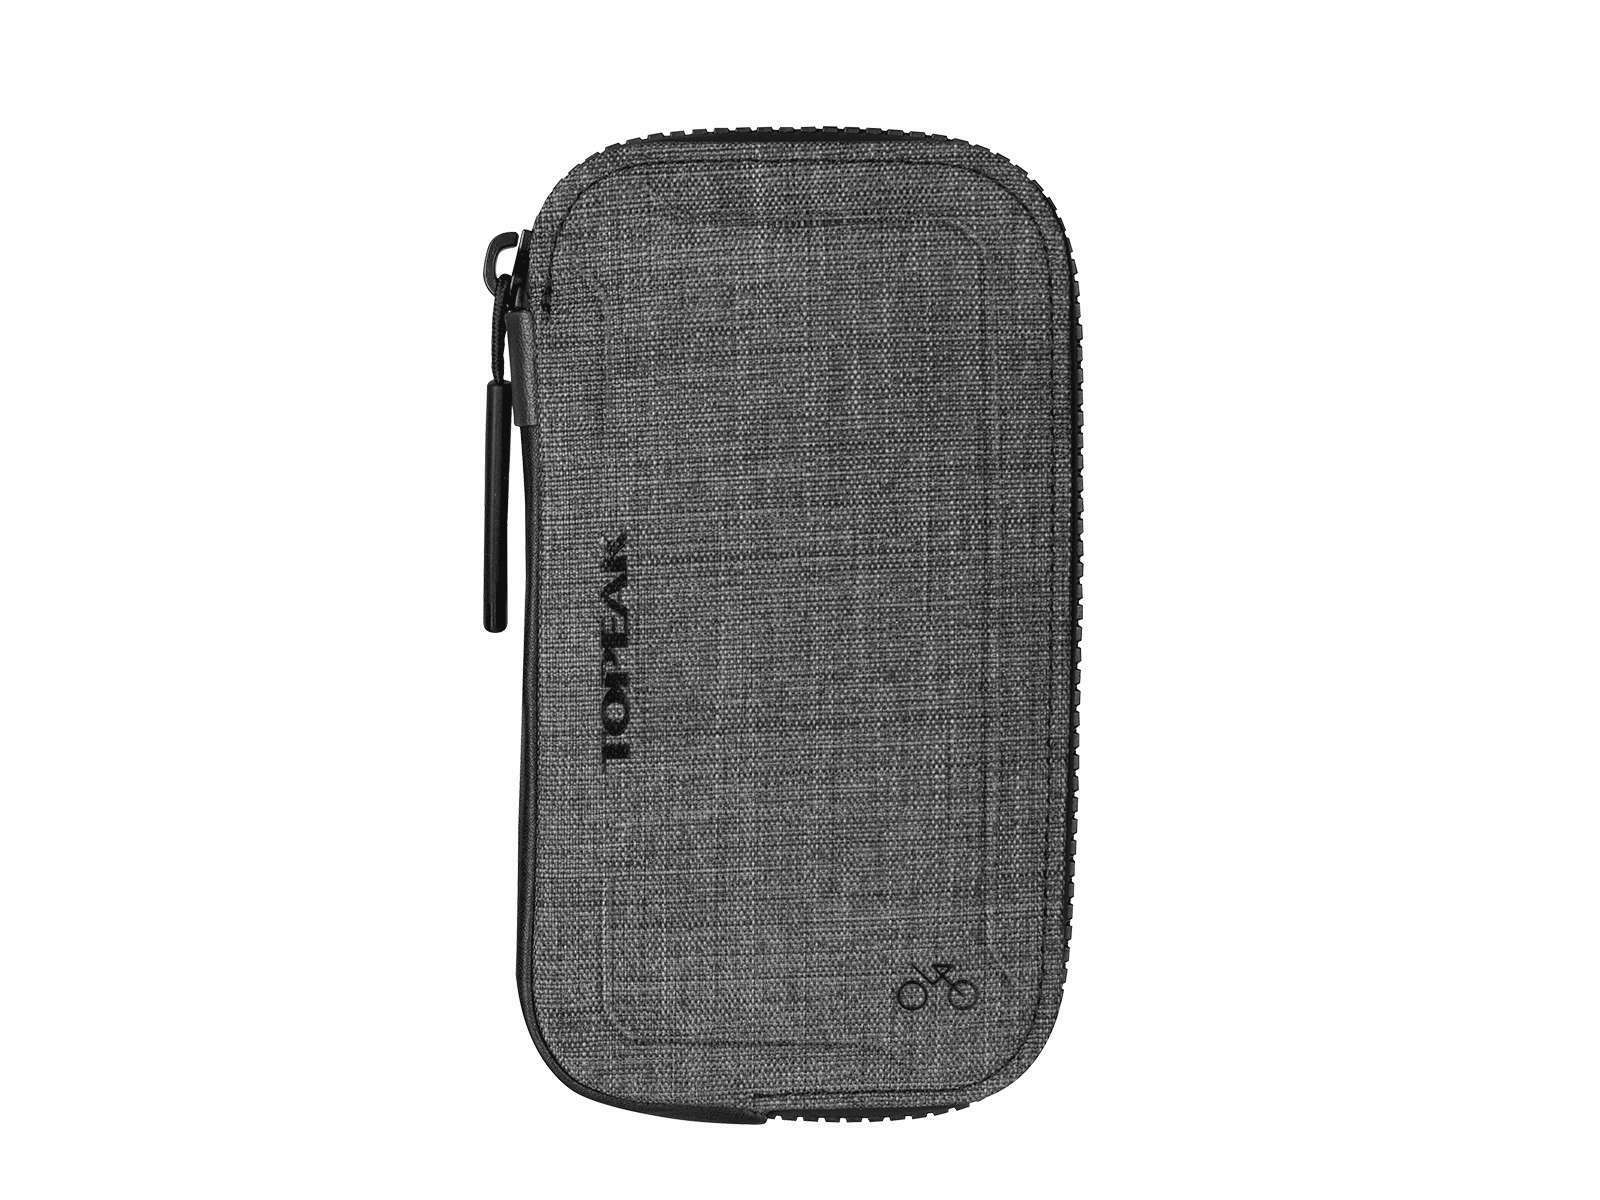 Topeak Cycling Wallet 4.7  inch Small Parts Smartphone Bag Bicycle TC2304G